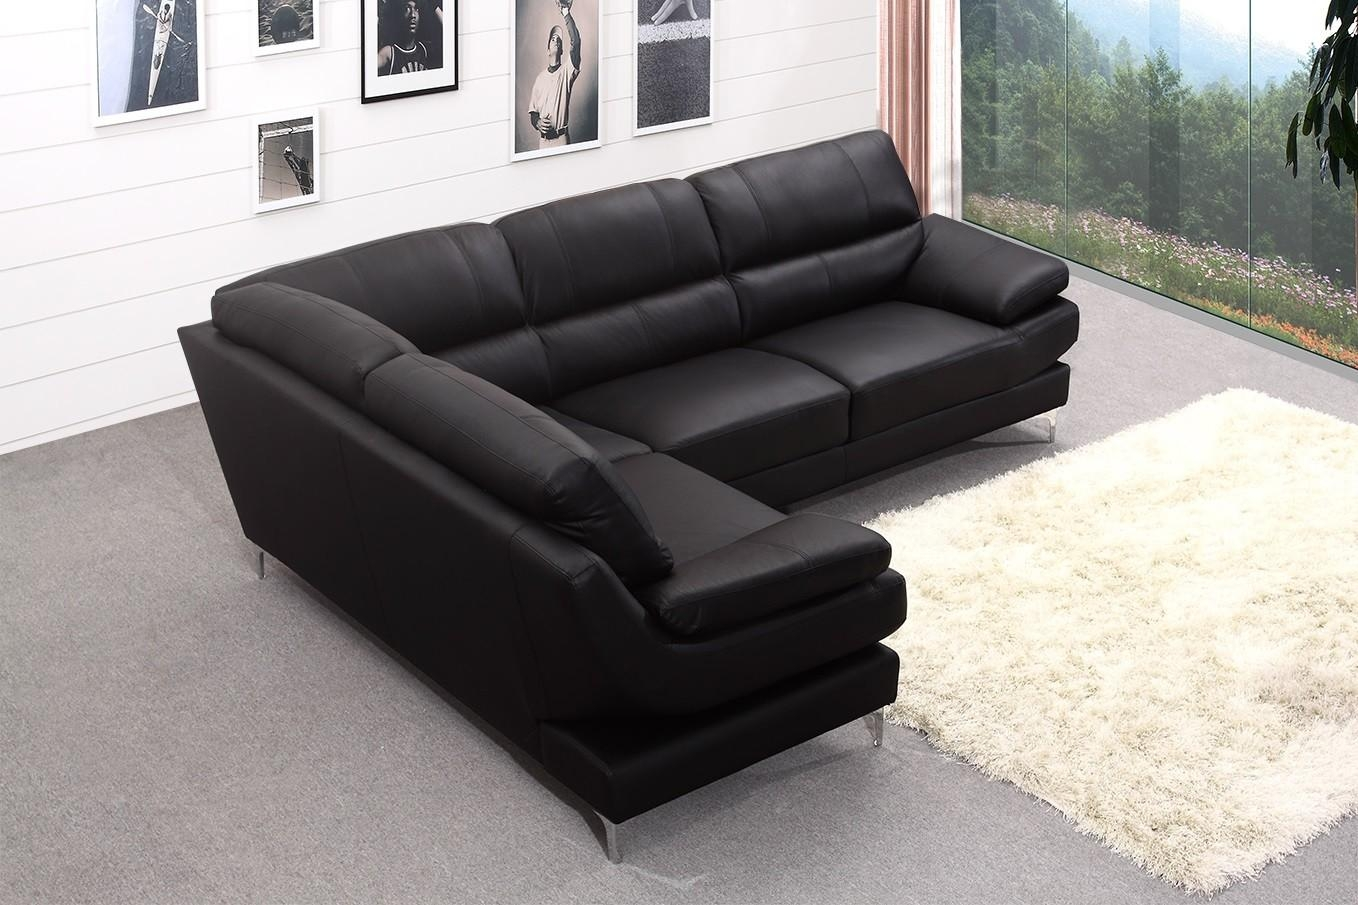 20 choices of black leather corner sofas sofa ideas for Black corner sofa